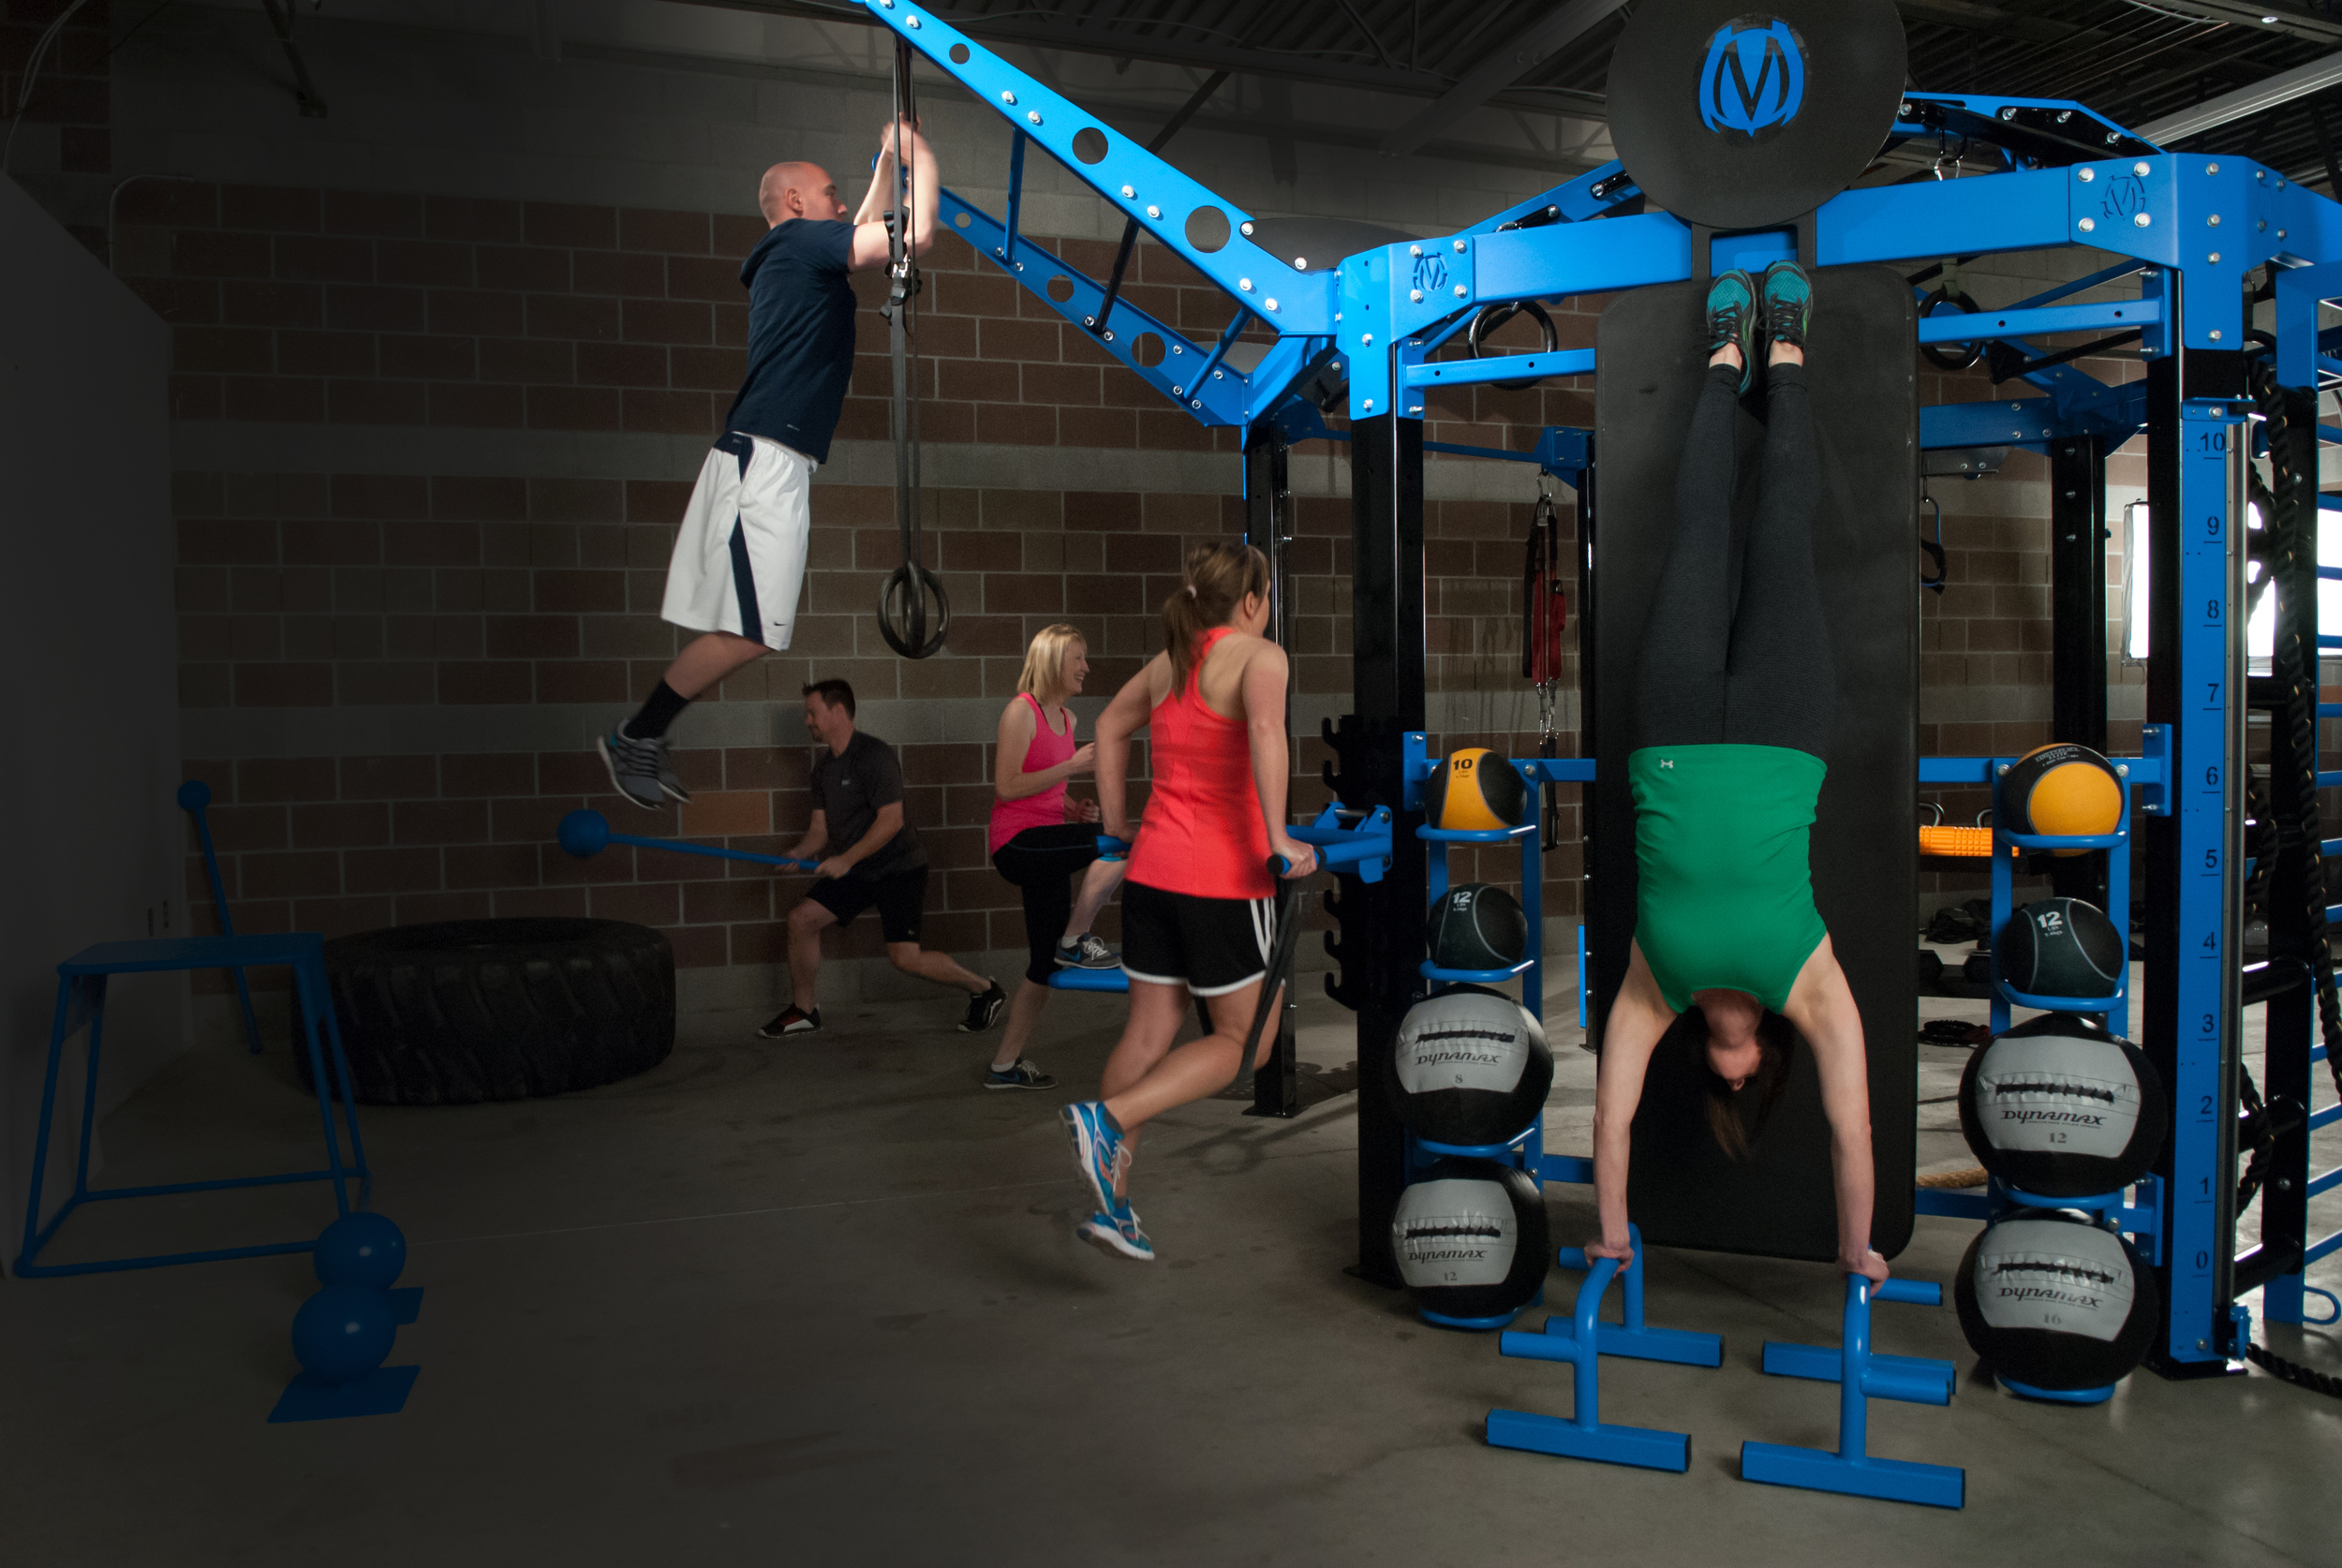 move_strong-185.jpg